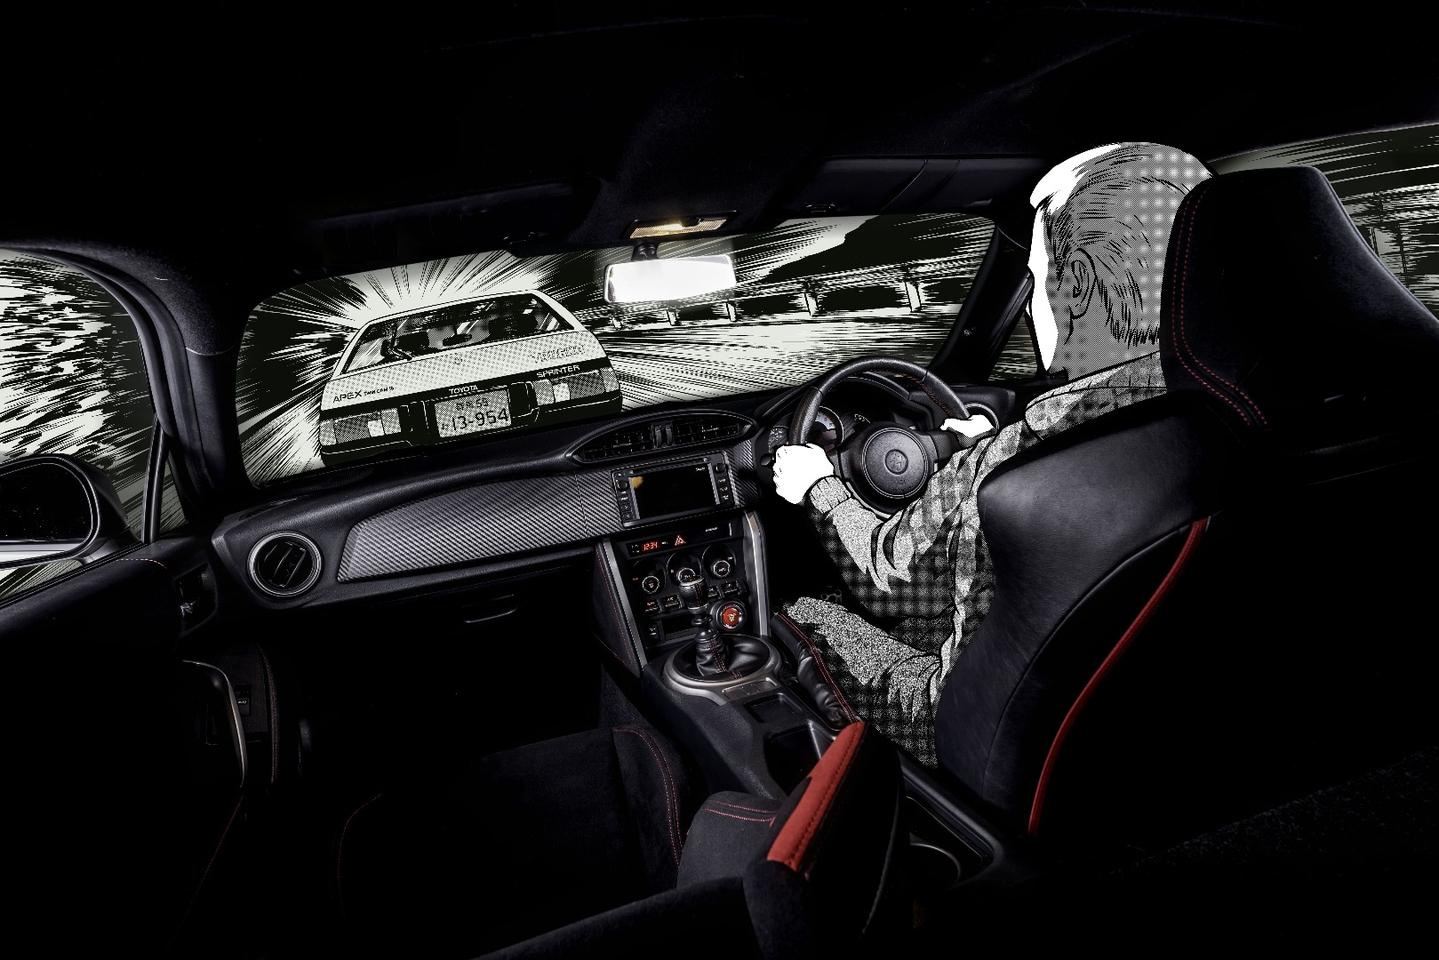 The GT86has been inserted into a manga scene by a UK artist